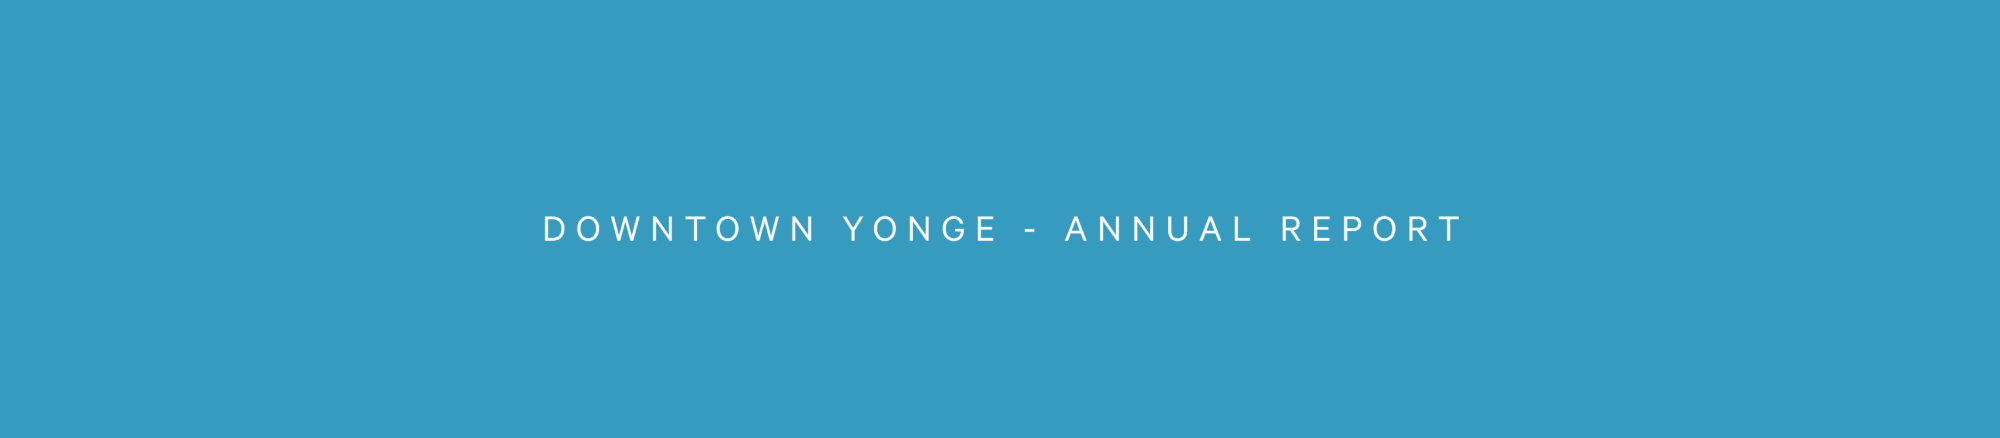 Downtown Yonge - Annual Report